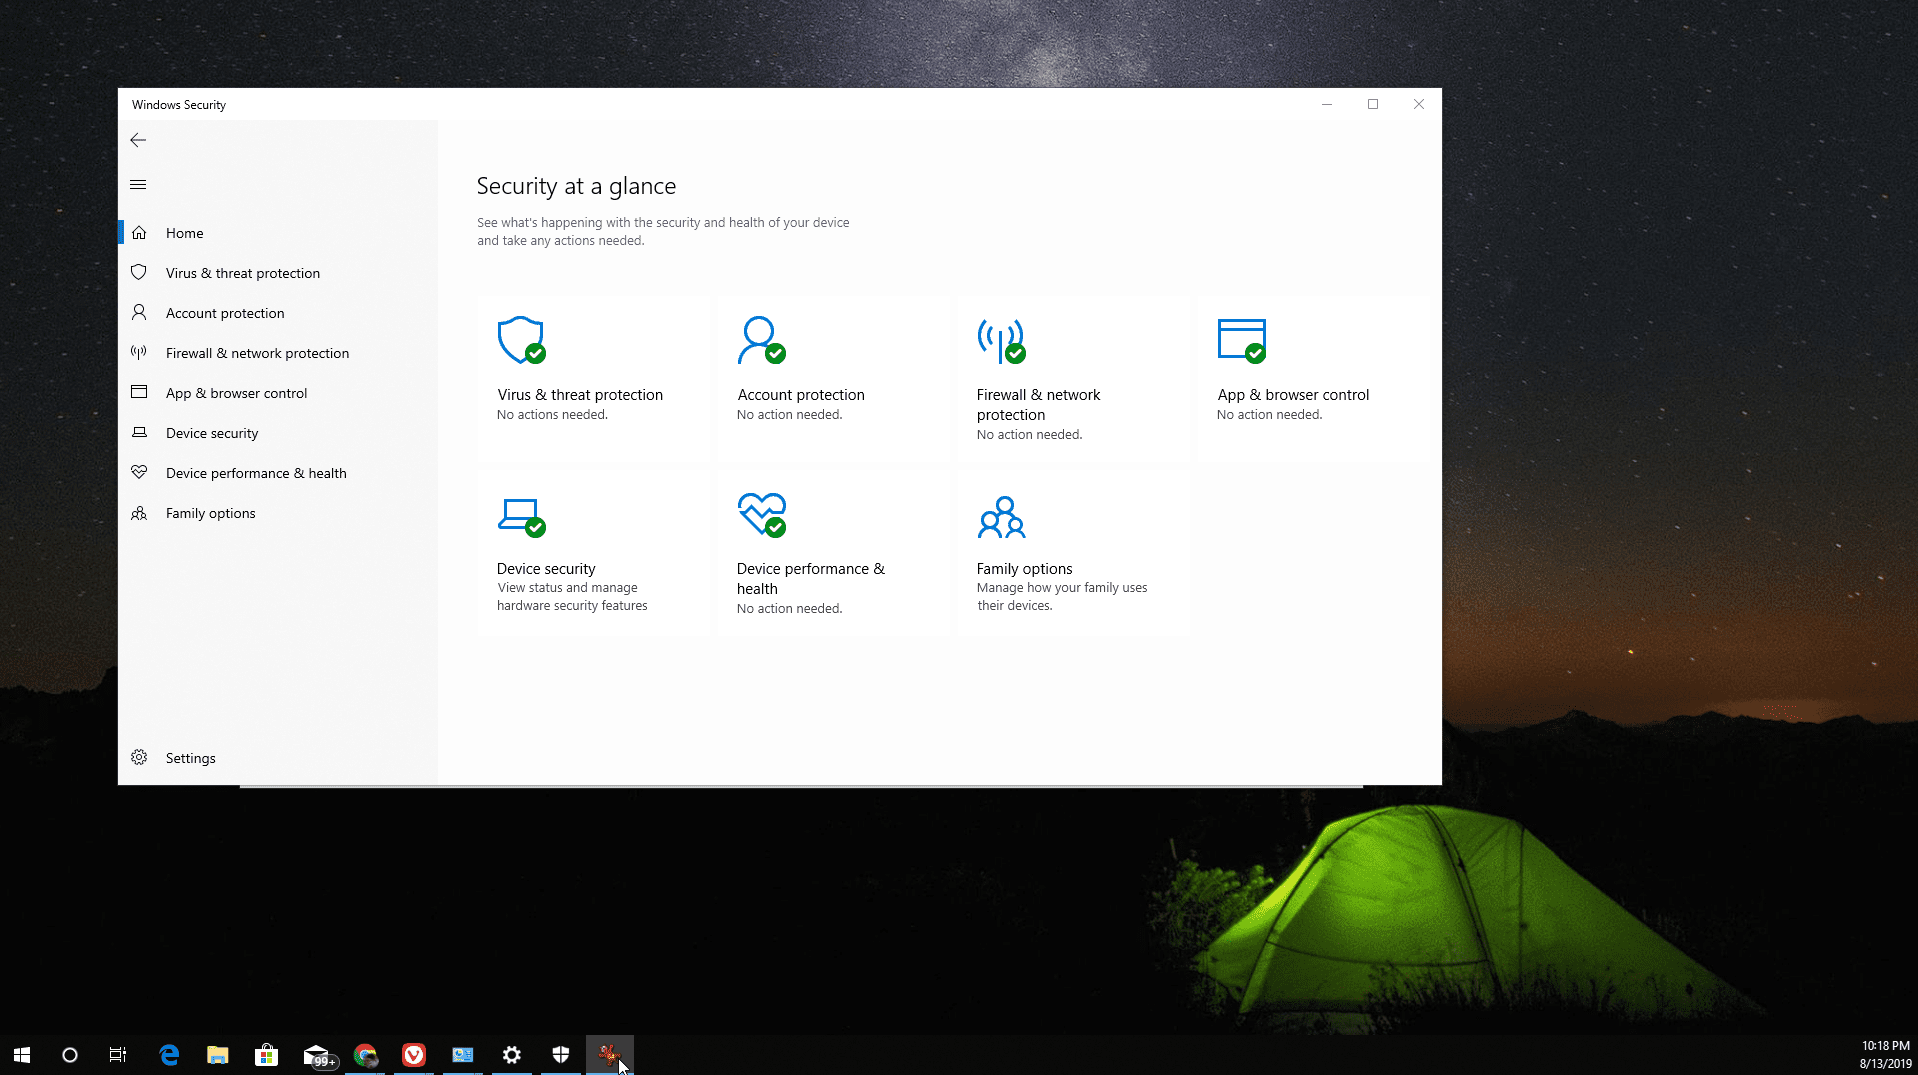 Does Windows 10 Need Antivirus Protection?